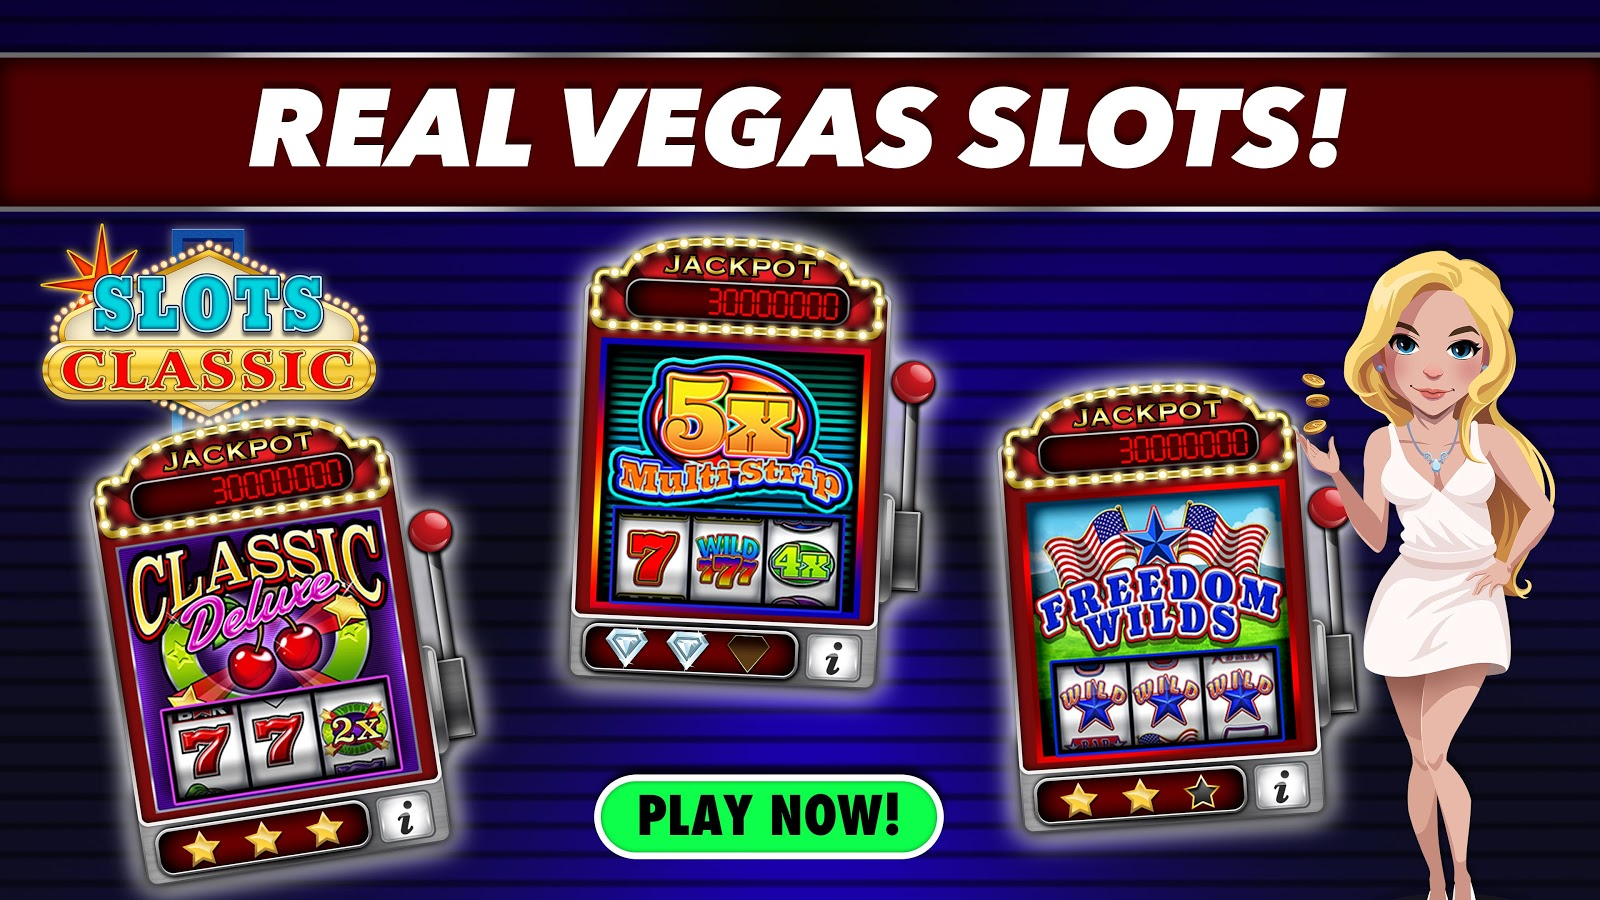 Countdown Online Slot Machine - A Classic Slot Free to Play